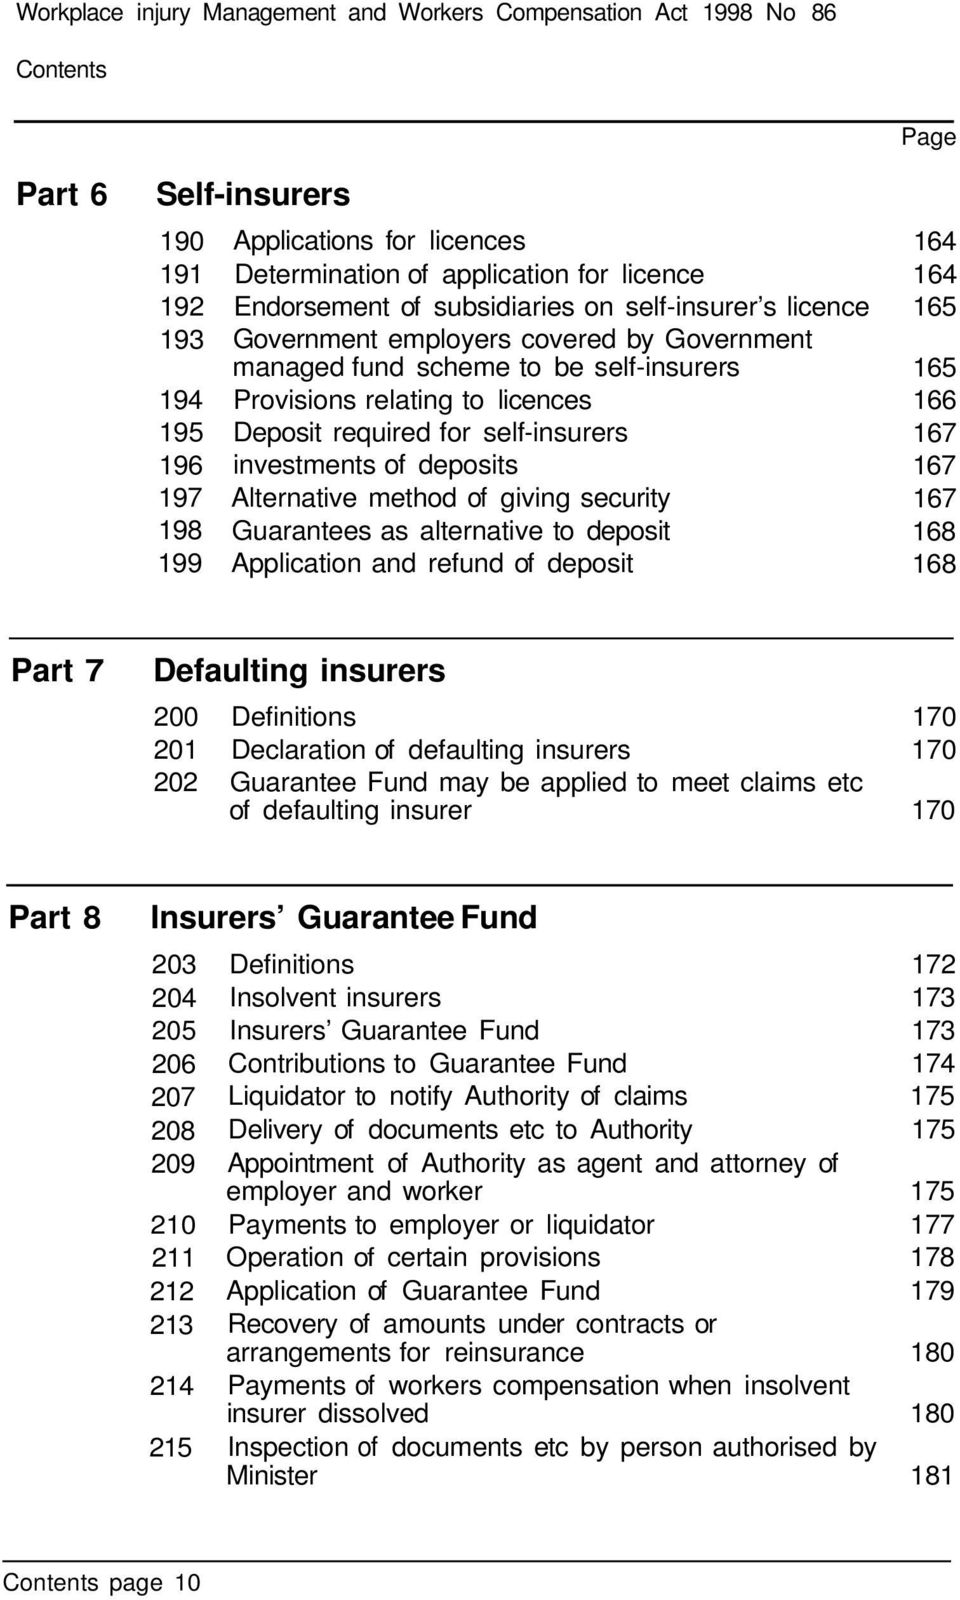 self-insurers investments of deposits Alternative method of giving security Guarantees as alternative to deposit Application and refund of deposit Page 164 164 165 165 166 167 167 167 168 168 Part 7